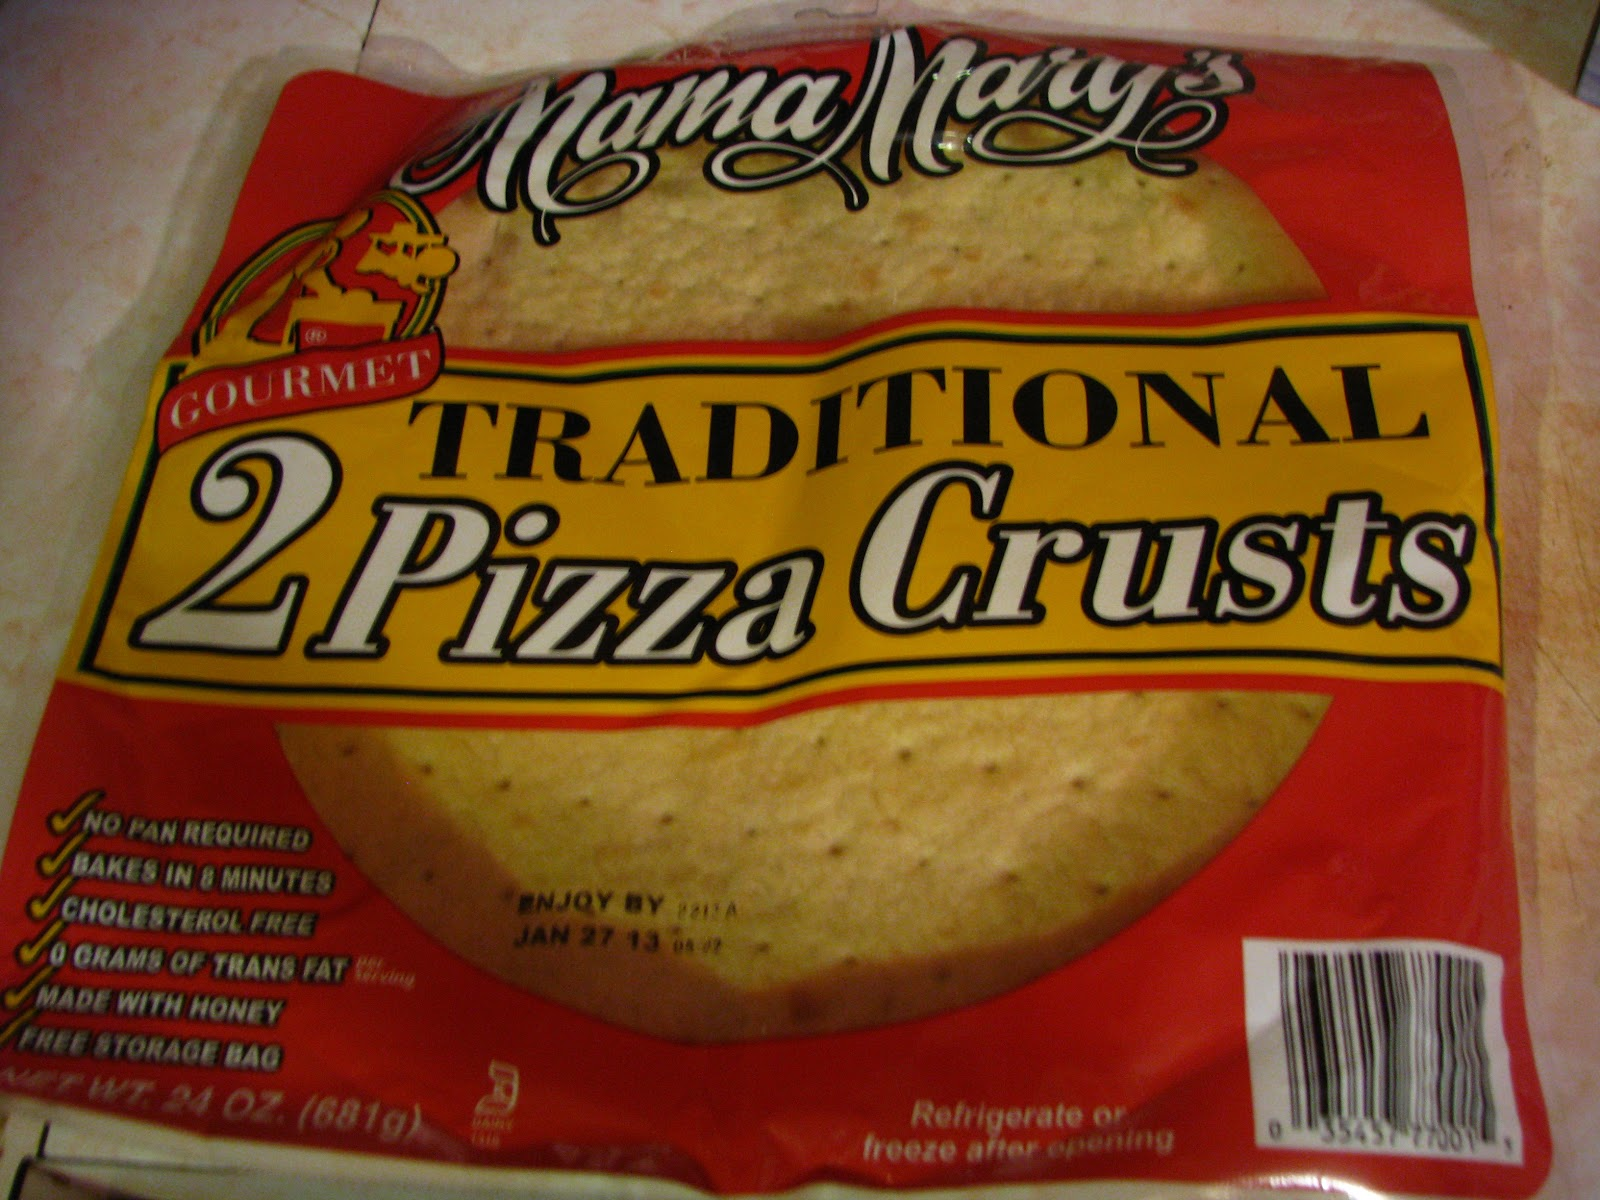 best pre-made pizza crust? Brian | Feb 5, PM. I've got a hankering for pizza, and I'm feeling especially lazy, so I'm heading to the safeway after work to get something frozen. Can anybody recommend a good pre-made crust brand? Either frozen or unfrozen. Reply to Post.